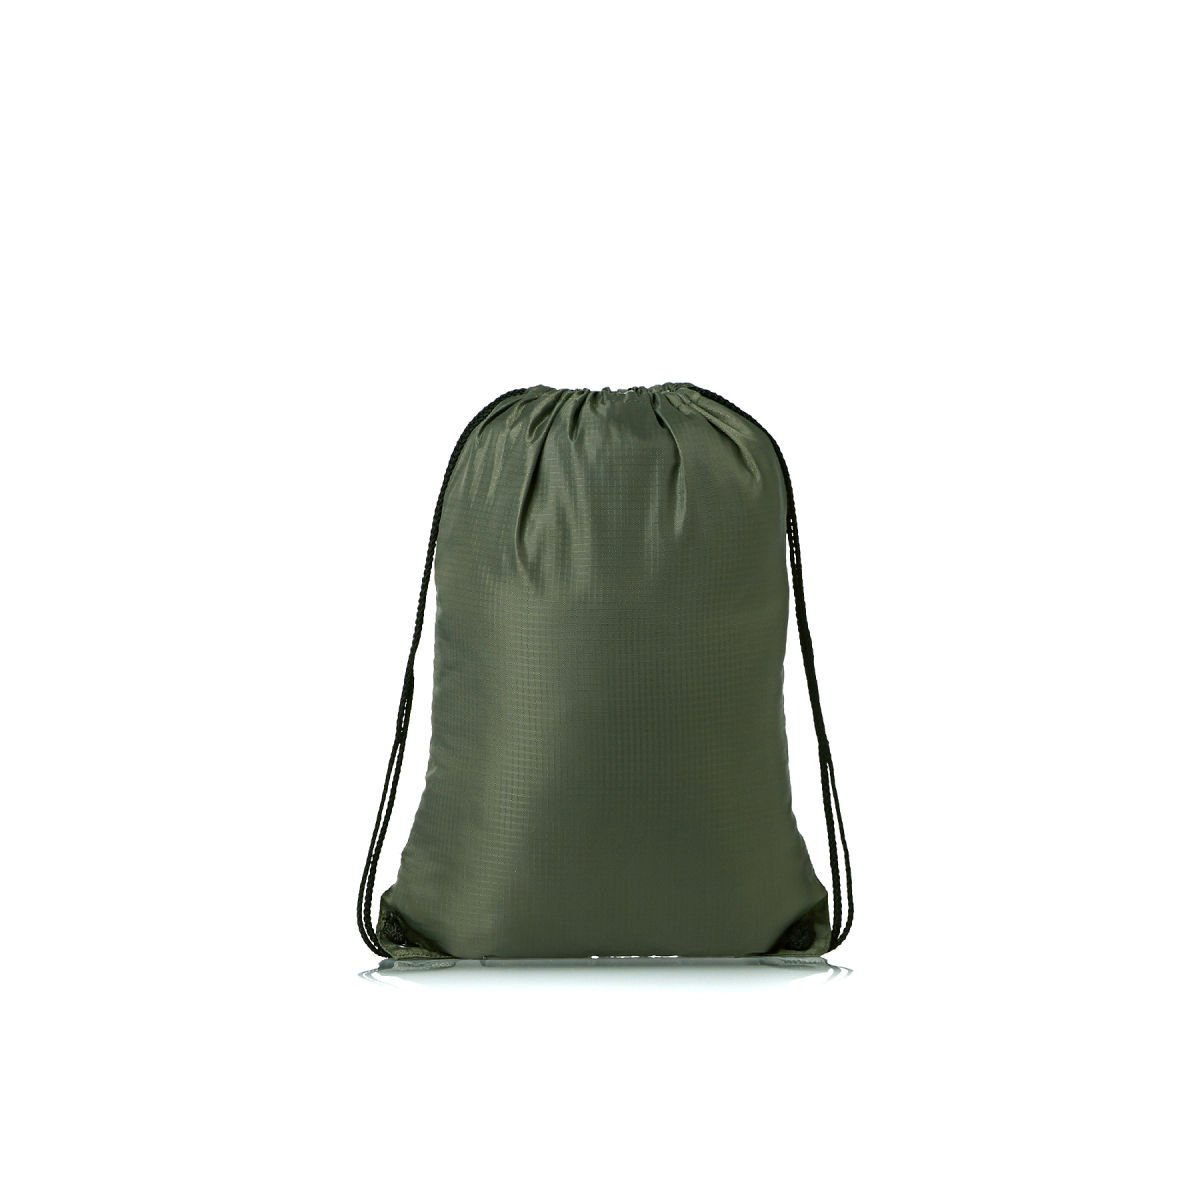 911609aff1 Amazon.com  VANS League Drawstring Bag - Anchorage Green  Sports   Outdoors